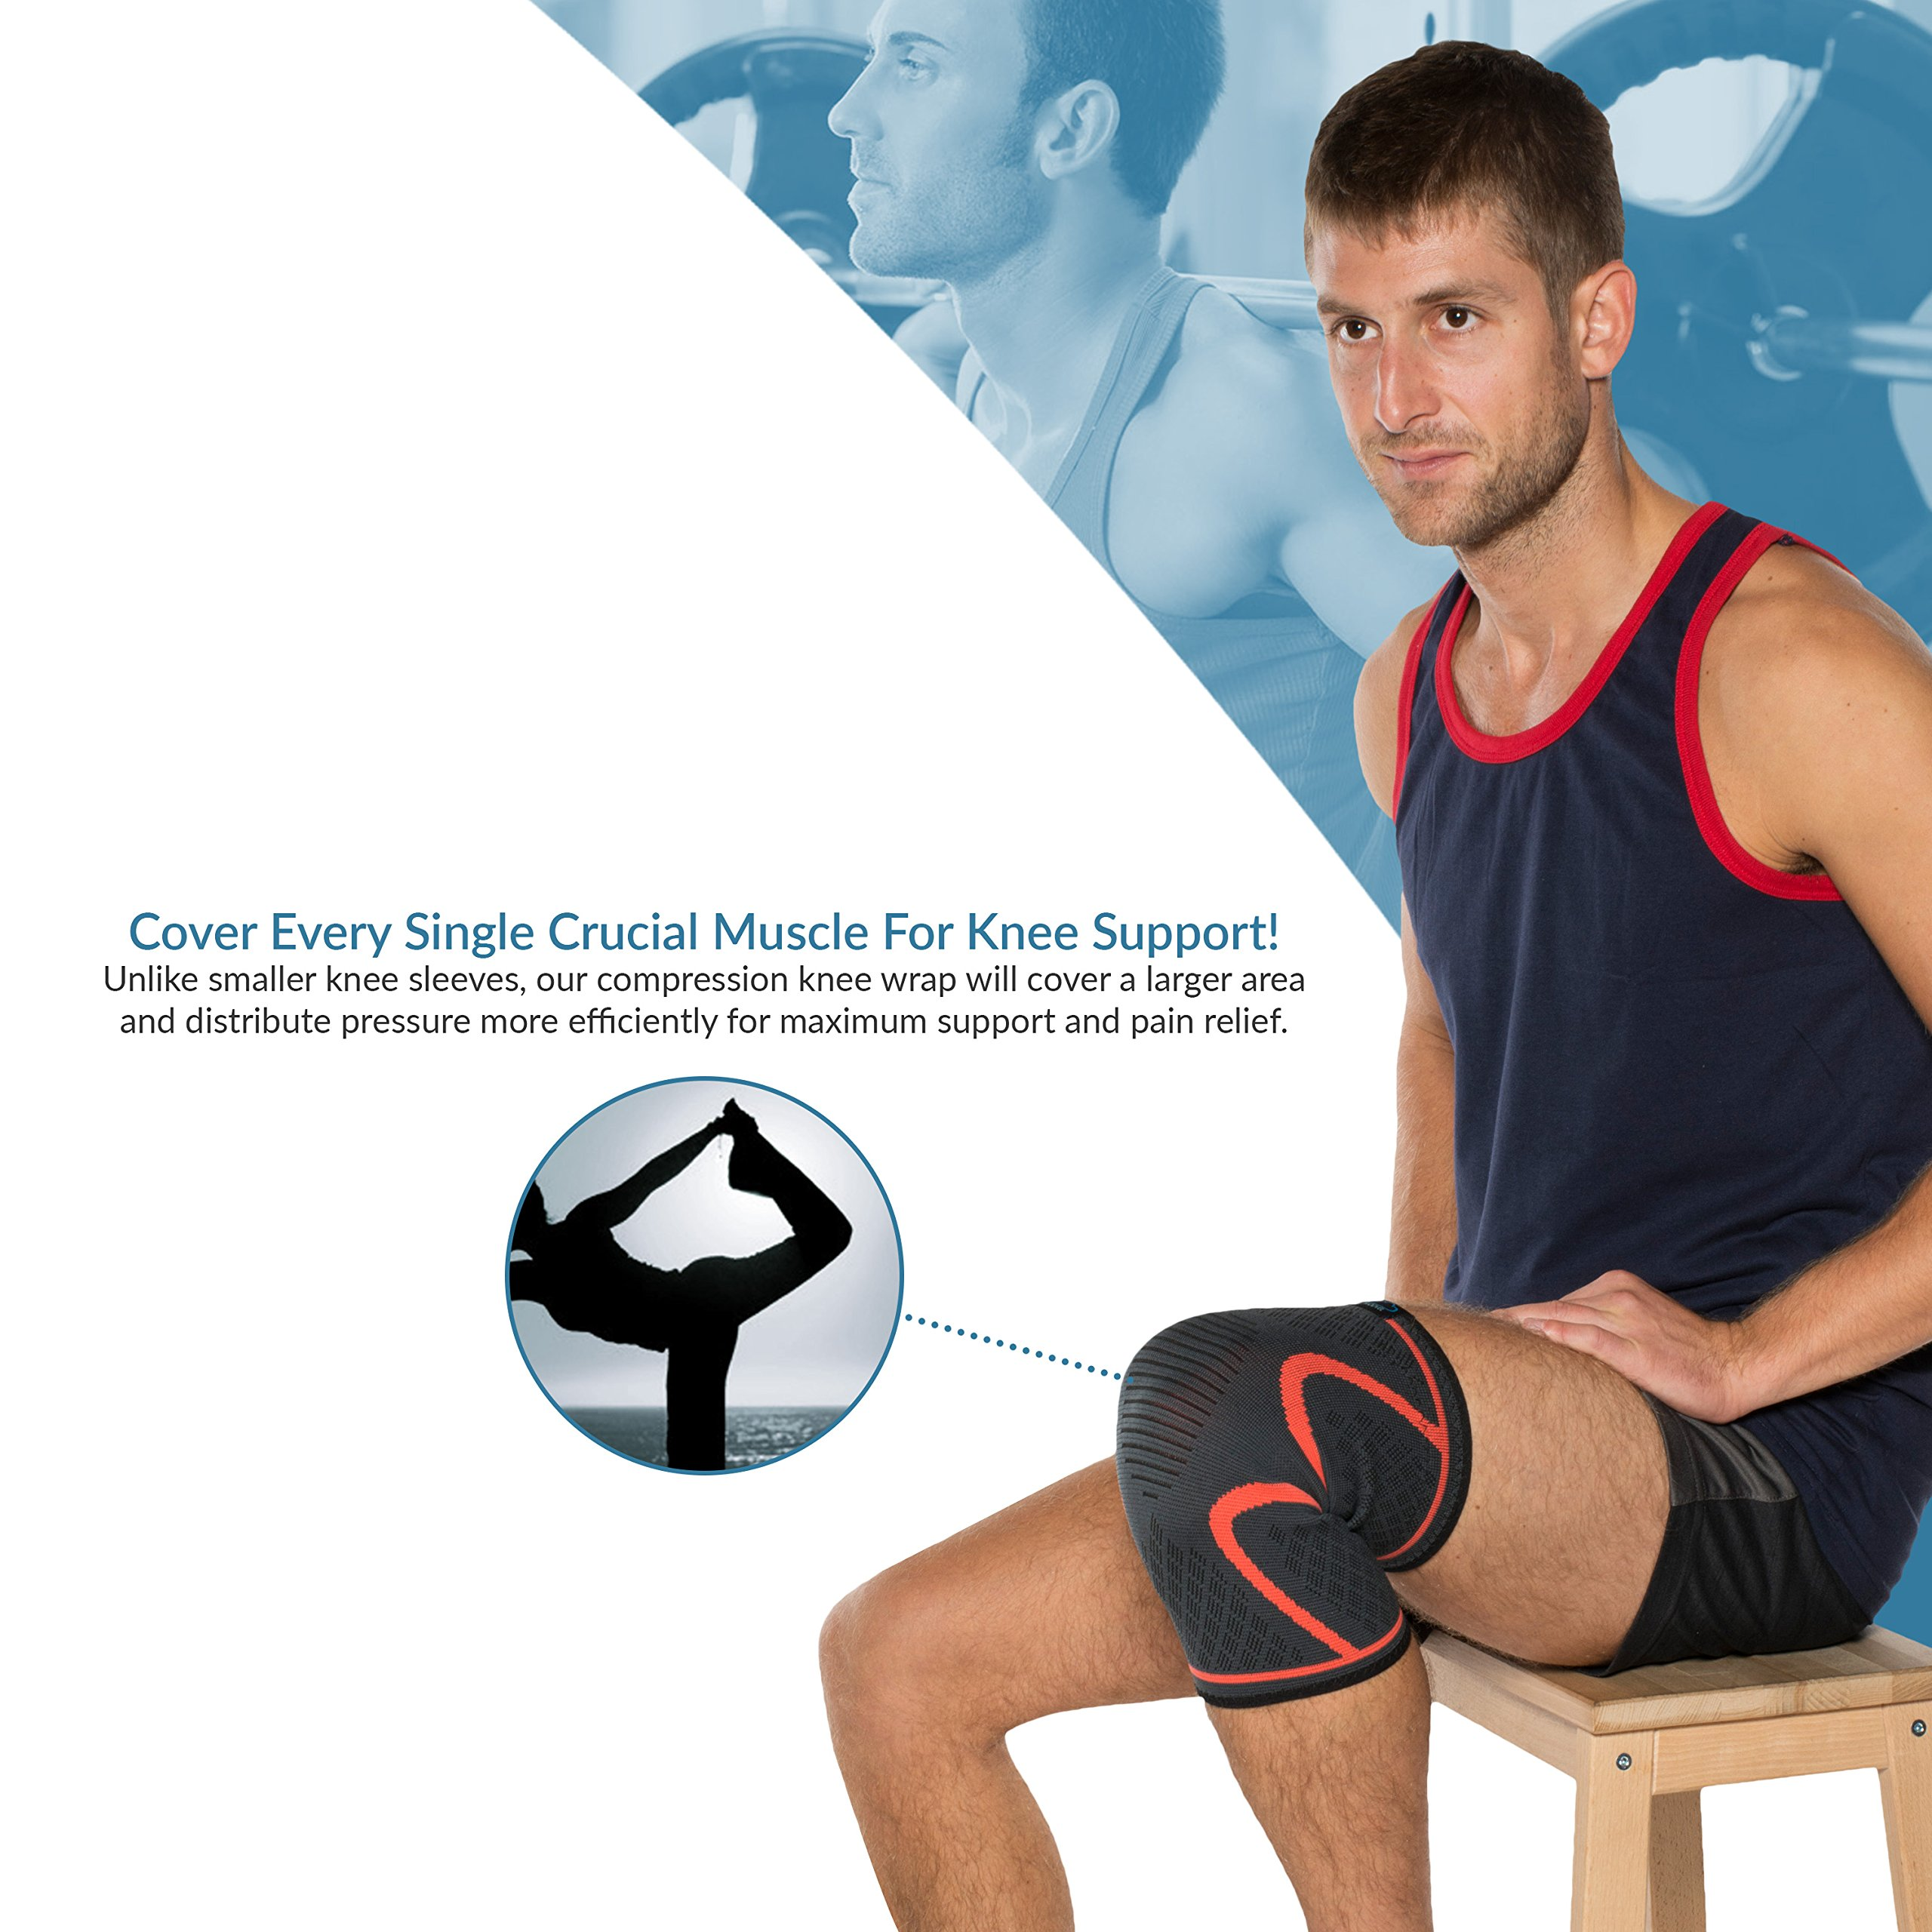 Modvel Compression Knee Sleeve (1 Pair) - Ultra Flexible, Comfortable Knee Brace for Men and Women, Great for All Athletics, Volleyball, ACL, Stabilizer for Arthritis and Knee Pain Relief, M (MV-111) by Modvel (Image #5)